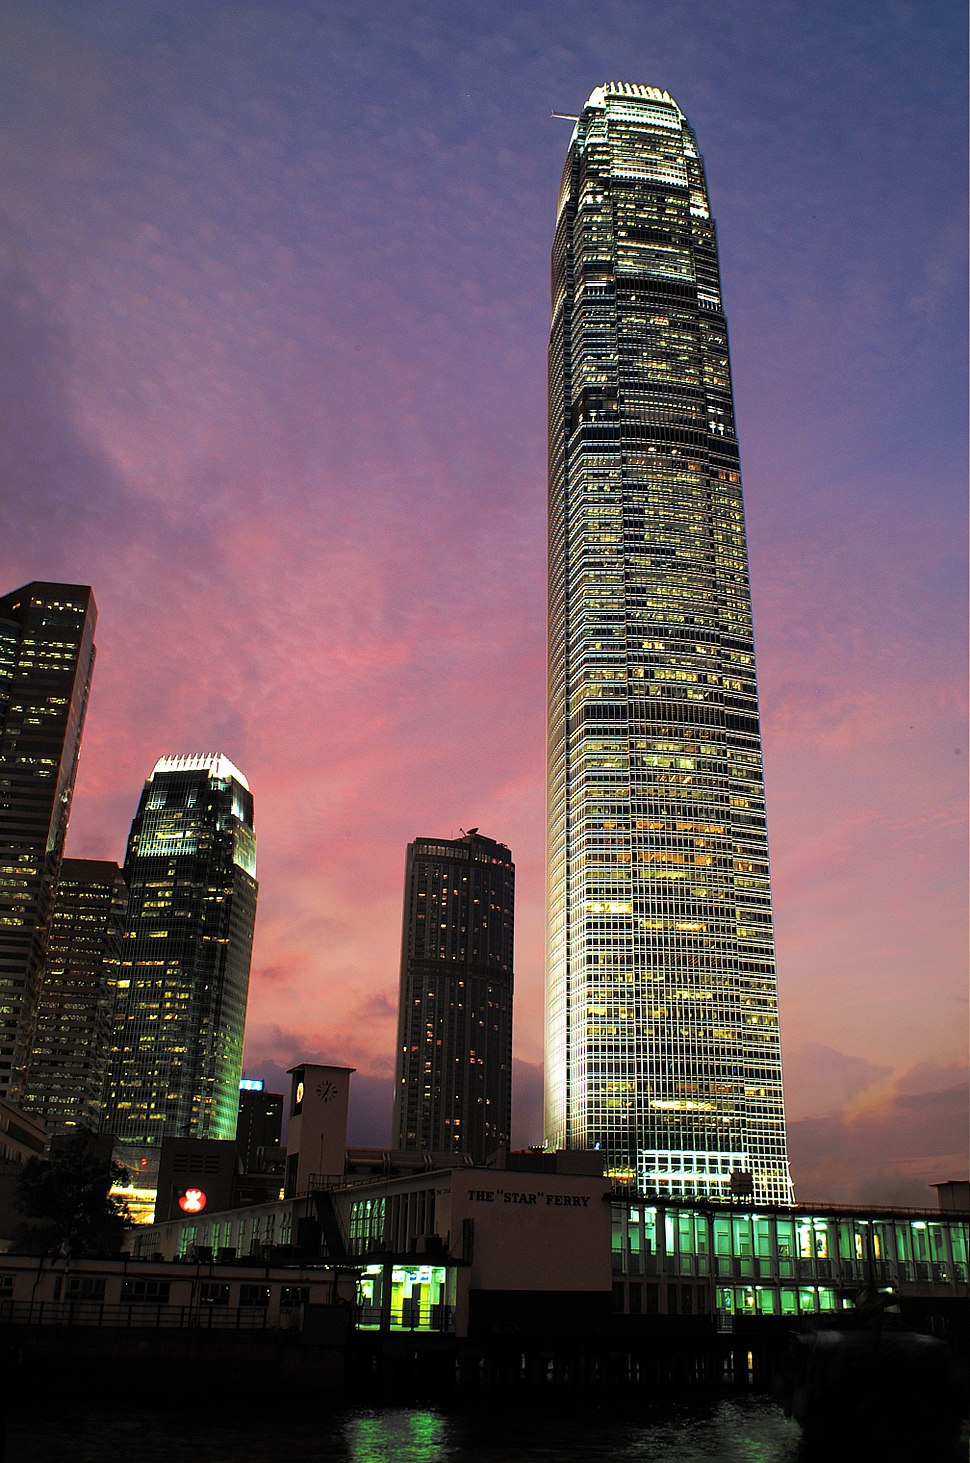 List of tallest buildings in Hong Kong - Simple English